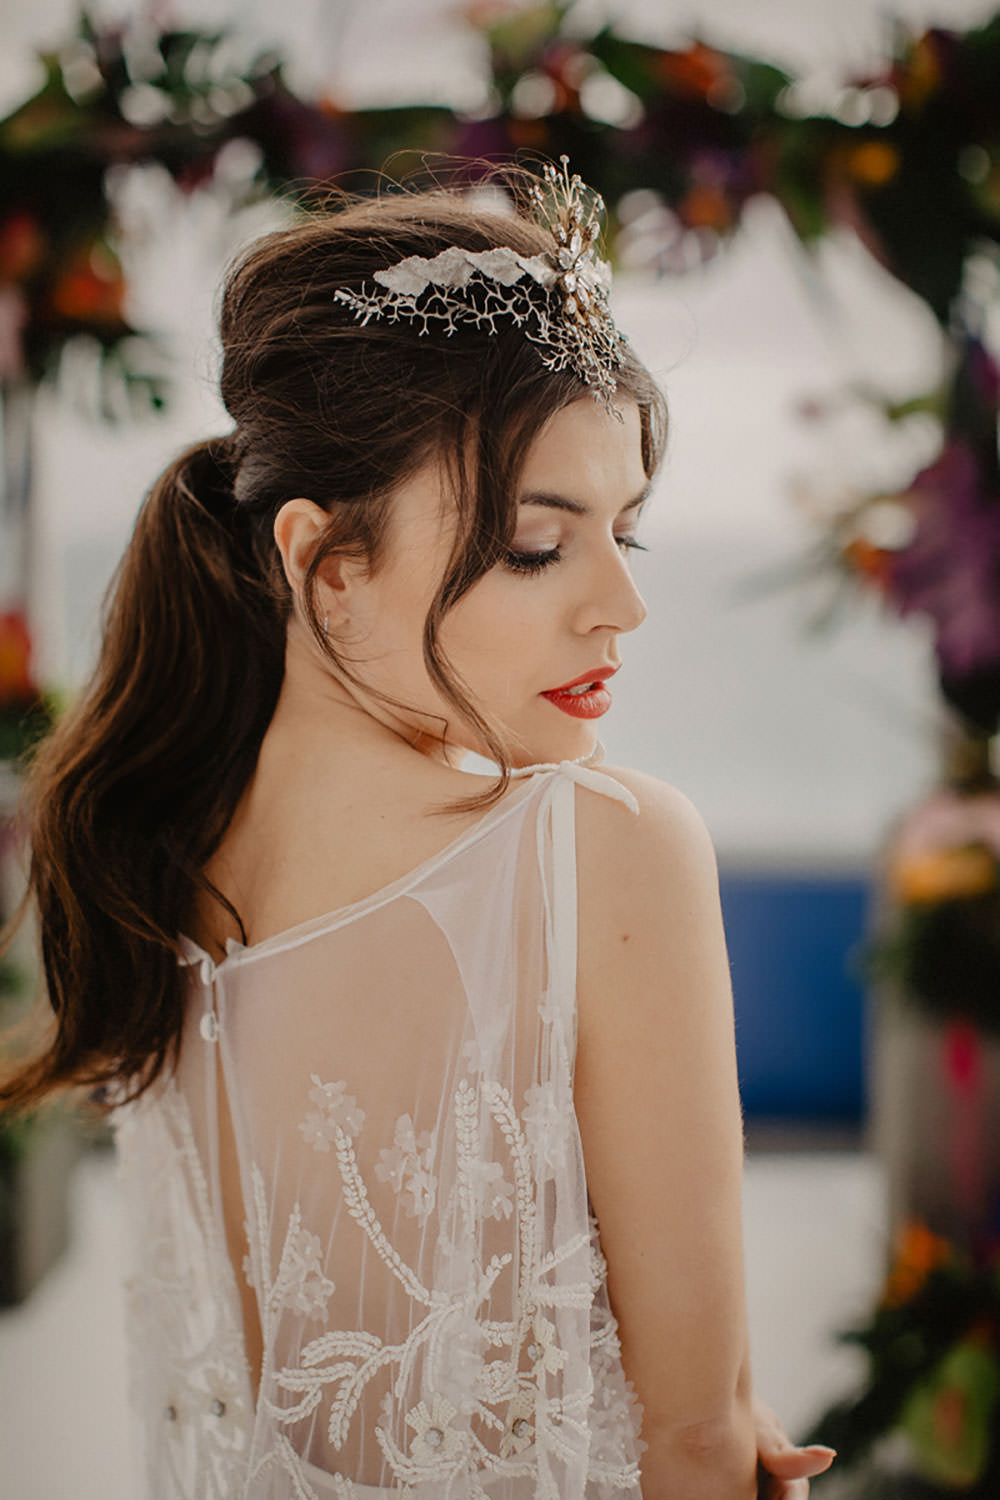 Colorful Destination Elopement Bride Headpiece Aisle Ceremony Pony Tail | Tropical Industrial Canary Islands Wedding Ideas Moana Photography